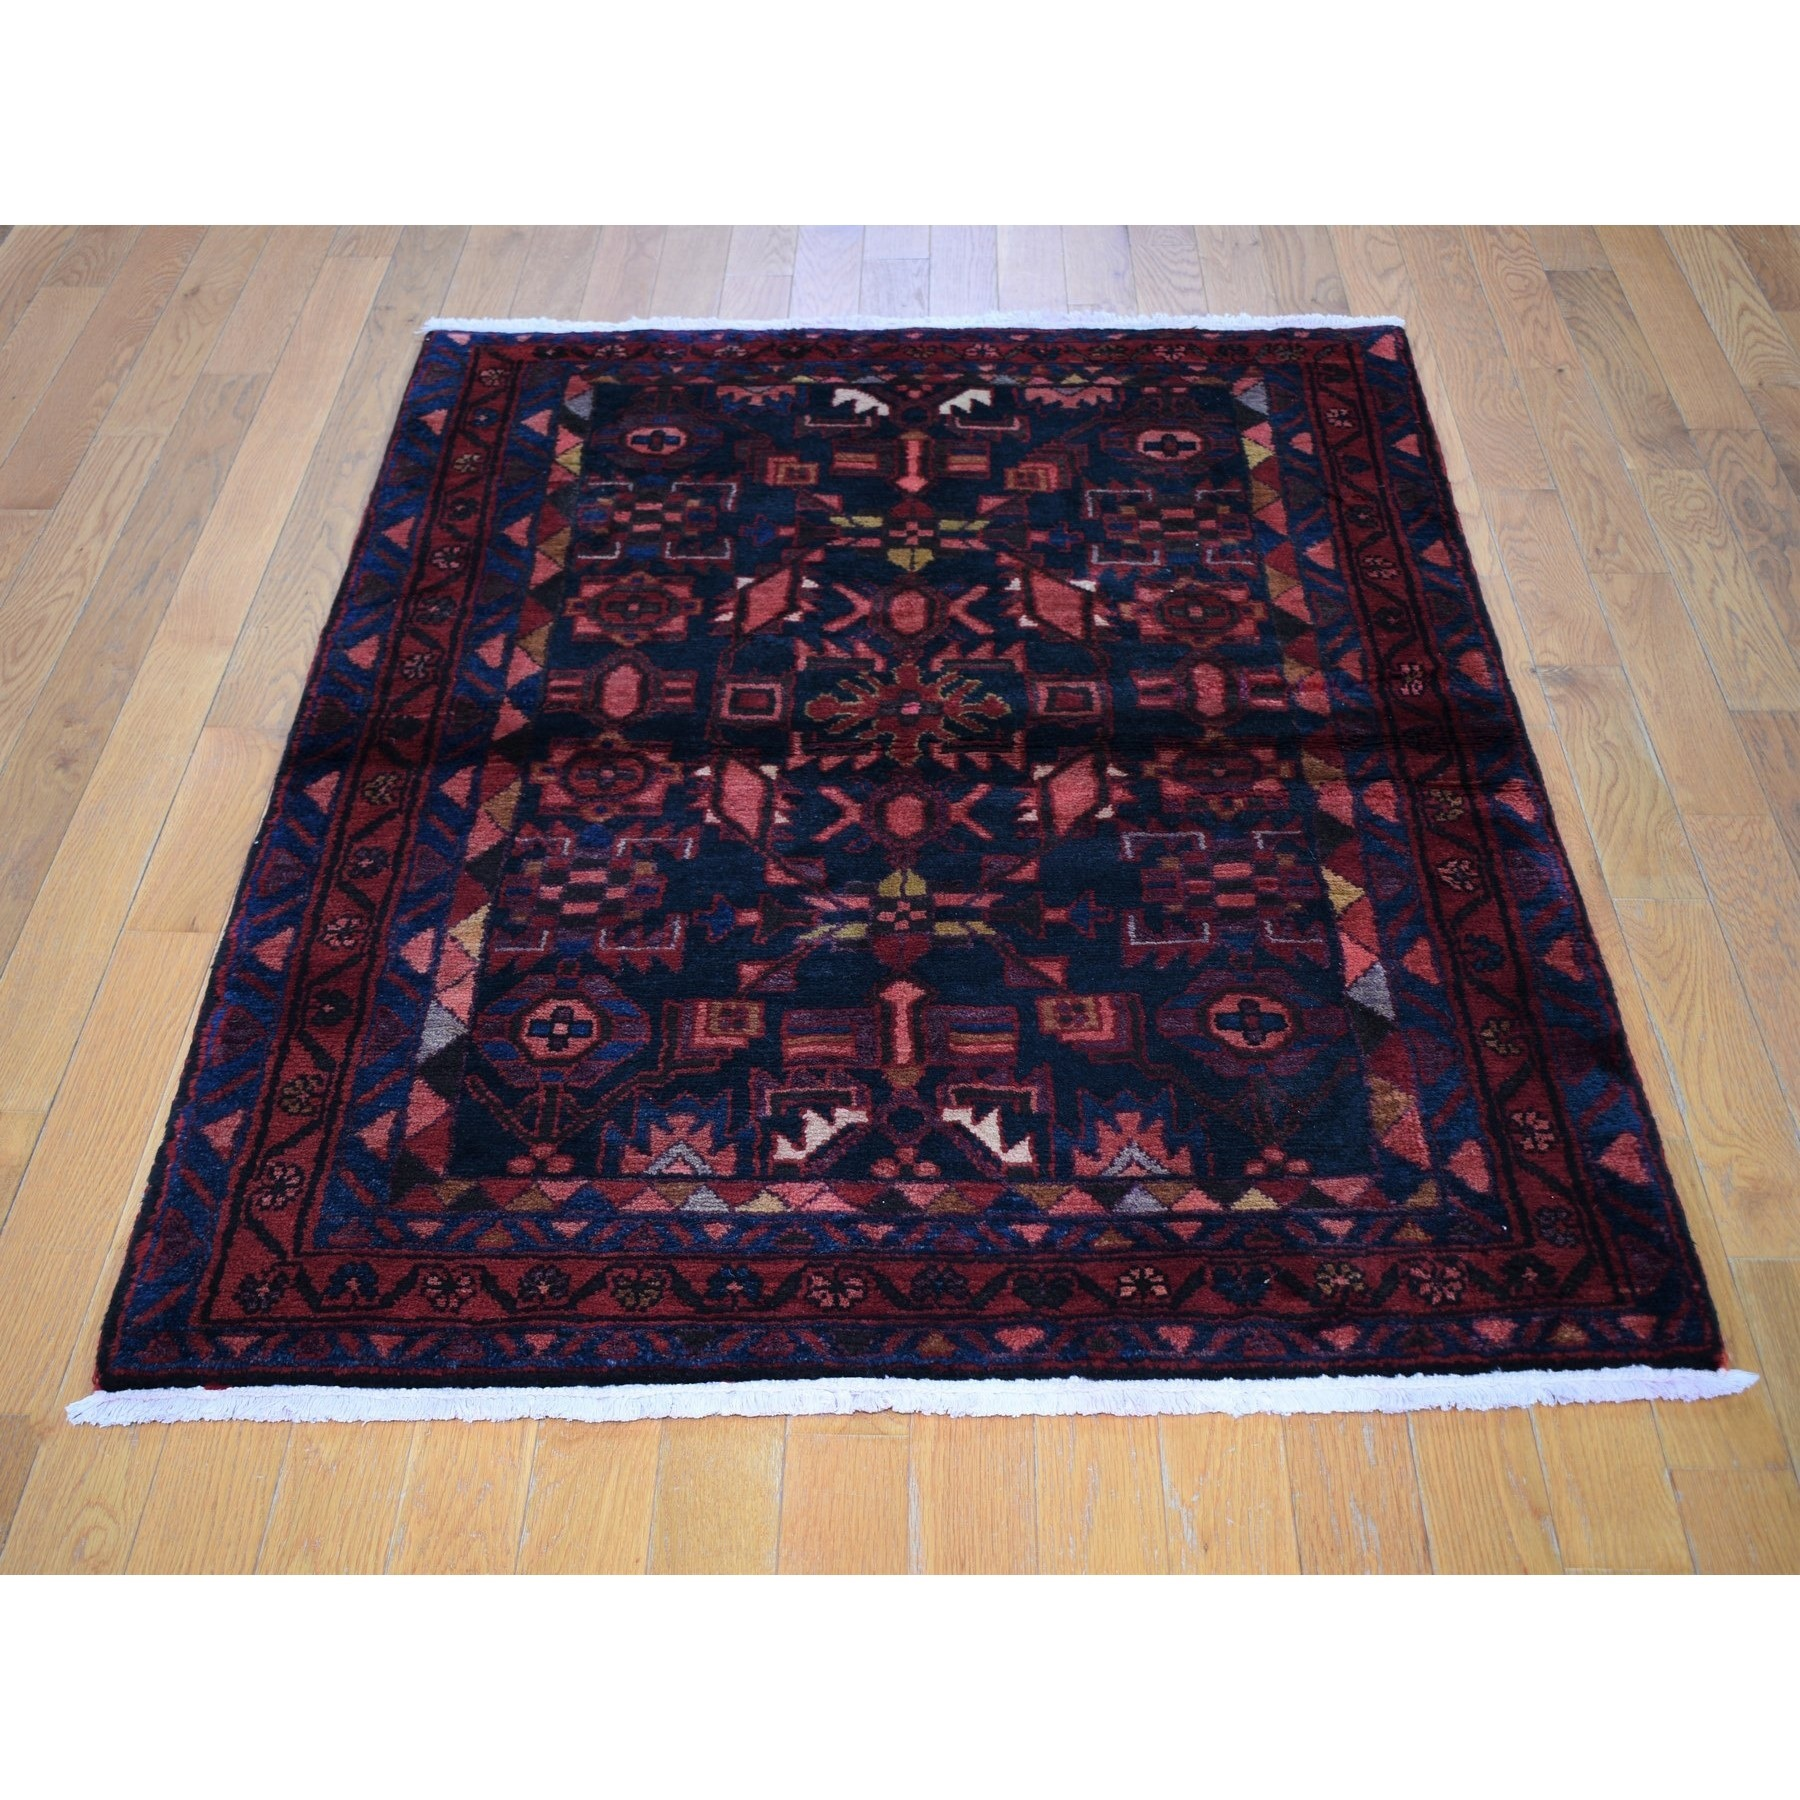 "3'8""x5'1"" Navy Blue Vintage Persian Hamadan Exc Condition Full Pile Pure Wool Hand Knotted Rug"